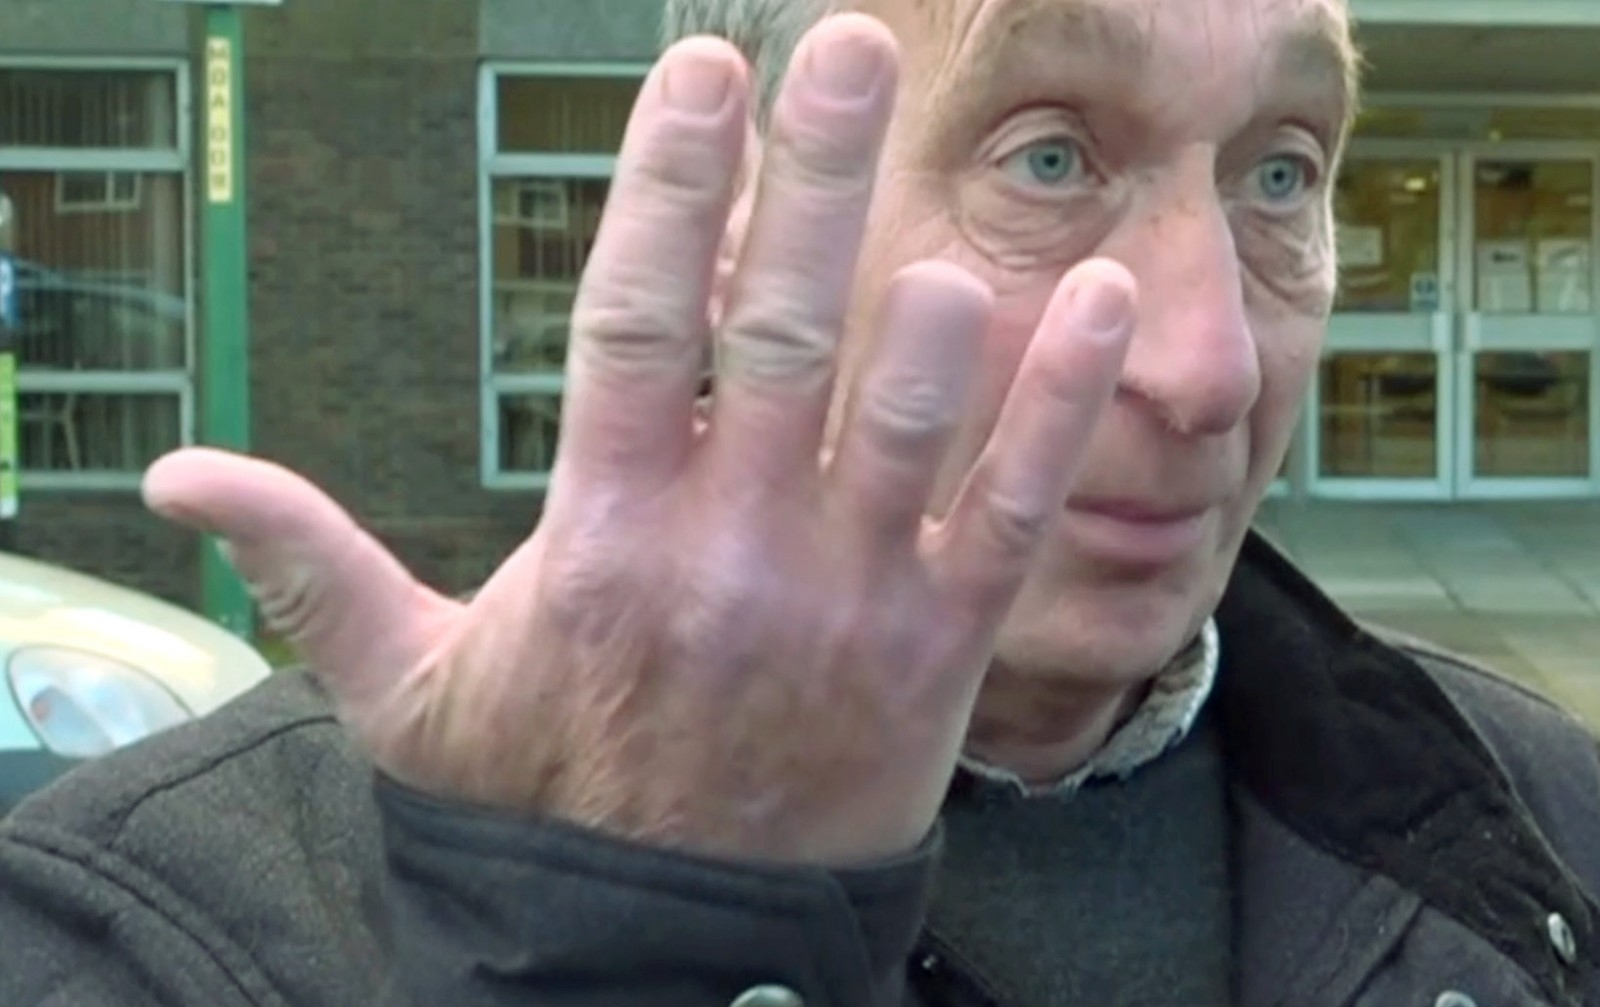 A postman had his finger bitten off by a dog as he pushed a letter through their box